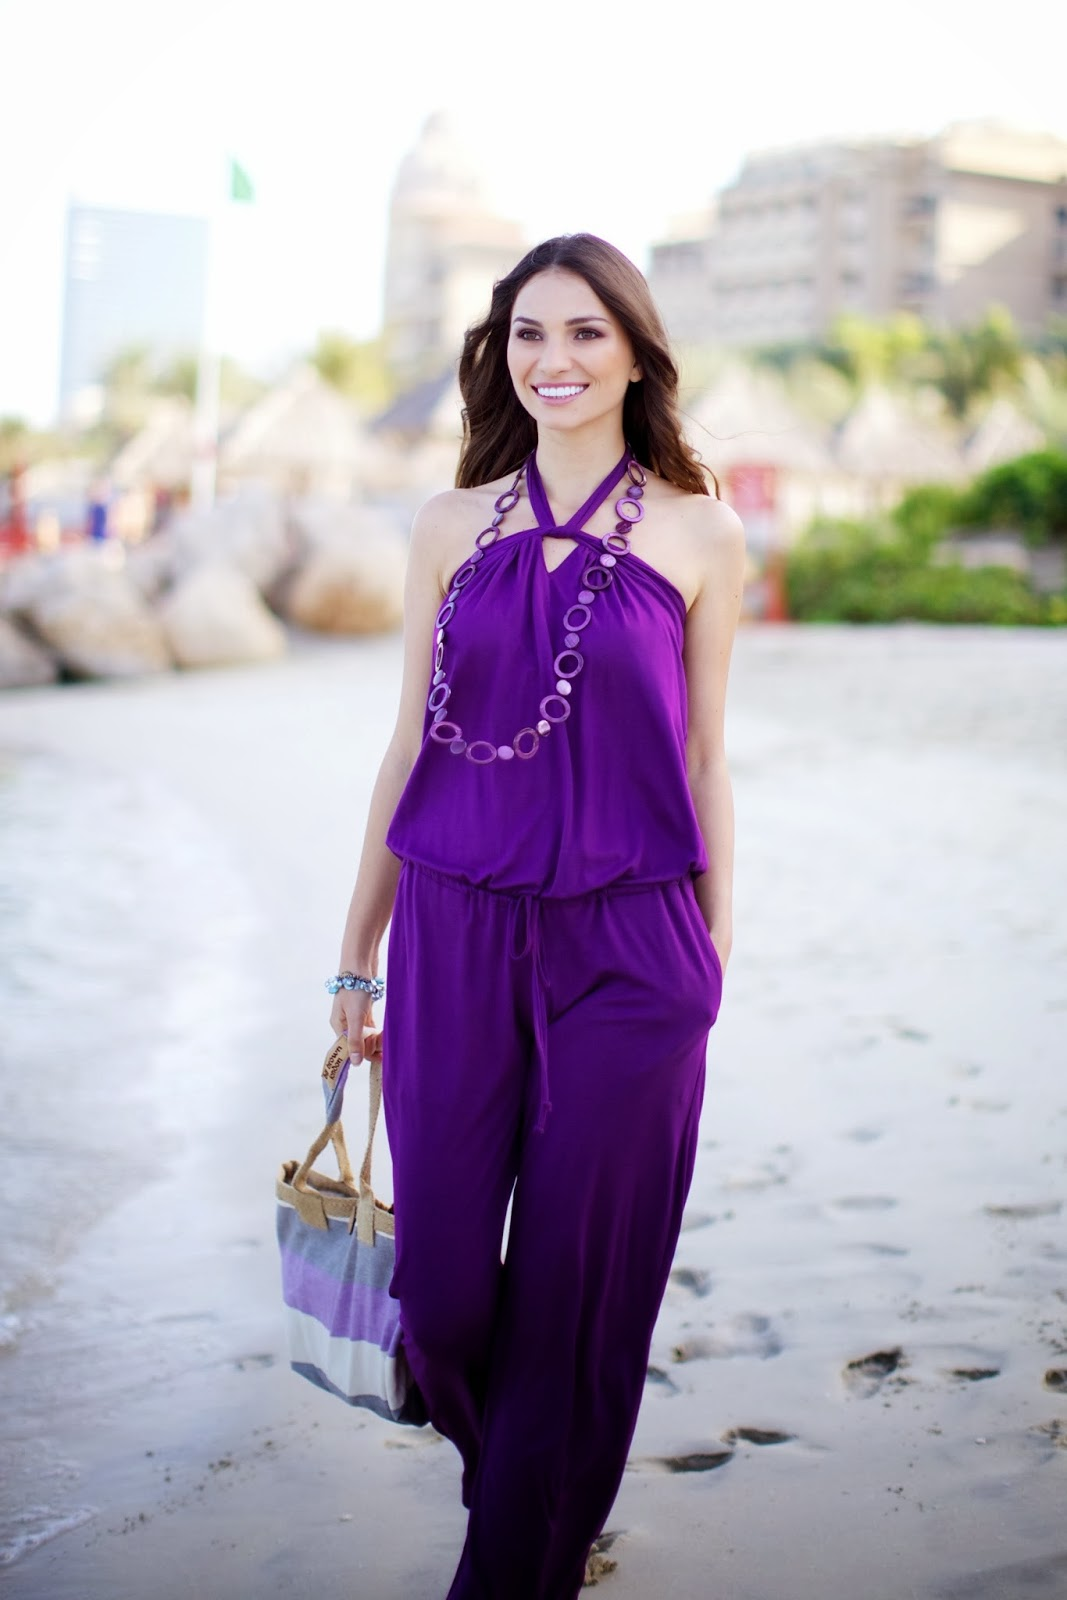 521dfb68d1 Fashionable jumpsuits for women stylish purple jumpsuits jpg 1067x1600 Women  purple jumpsuit